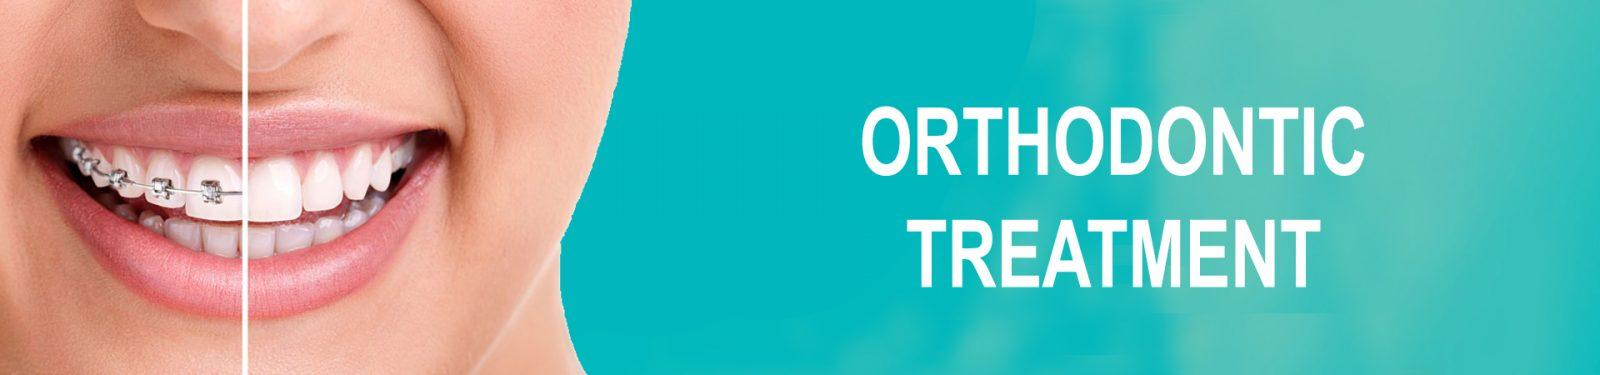 ORTHODONTIC TEATMENT